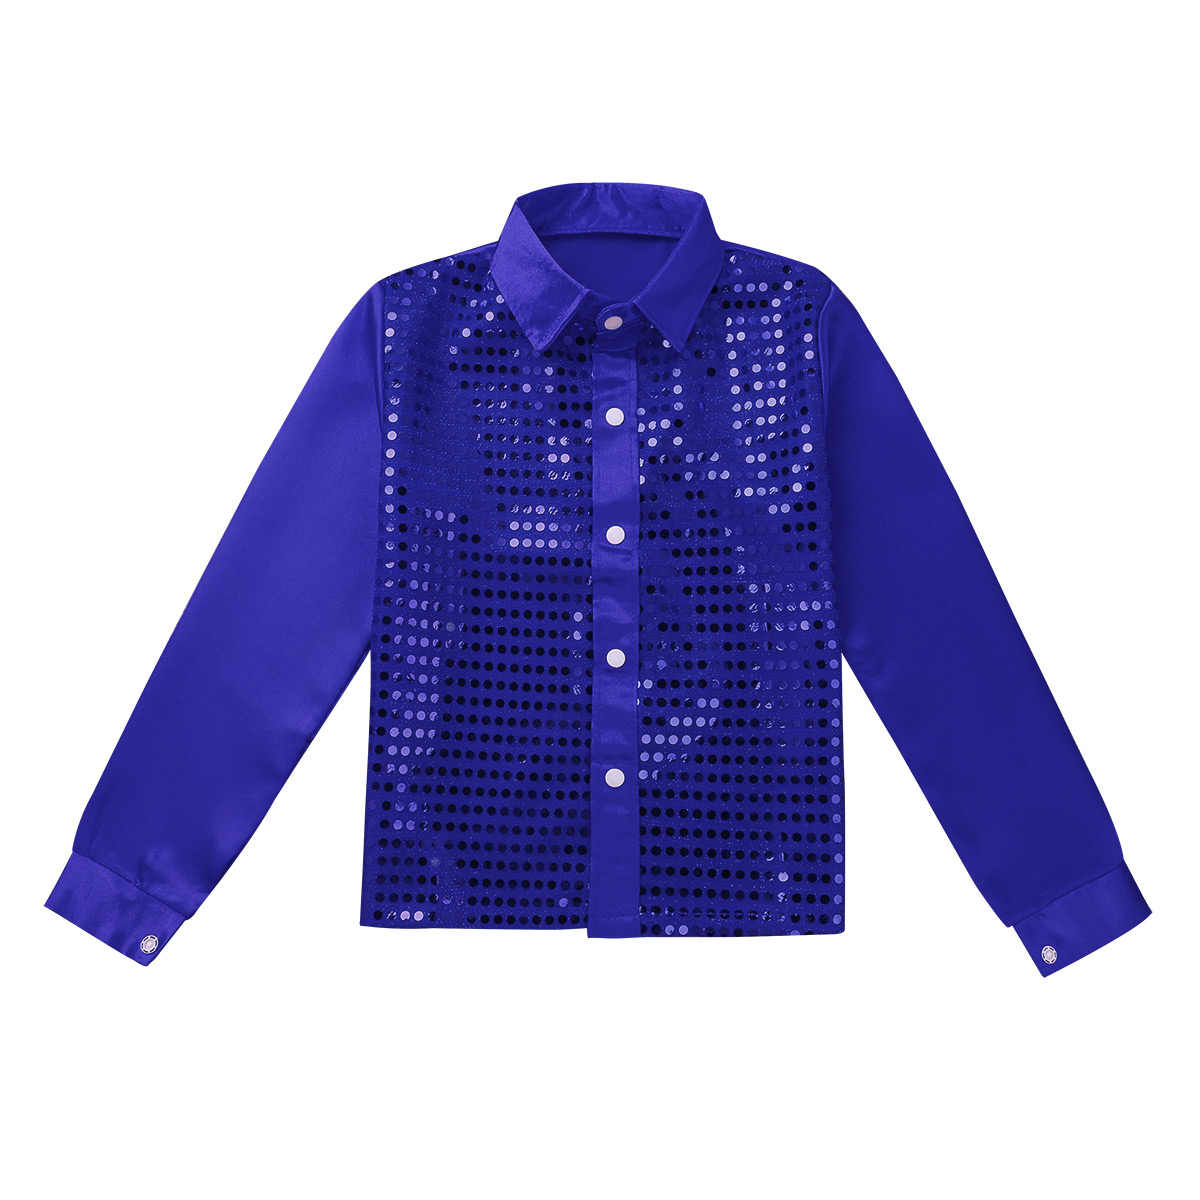 ... TiaoBug Kids Boys Shiny Sequin Long Sleeve Shirt Choir Jazz Dance  Costume Child Stage Performance Hiphop ... b26231911f36